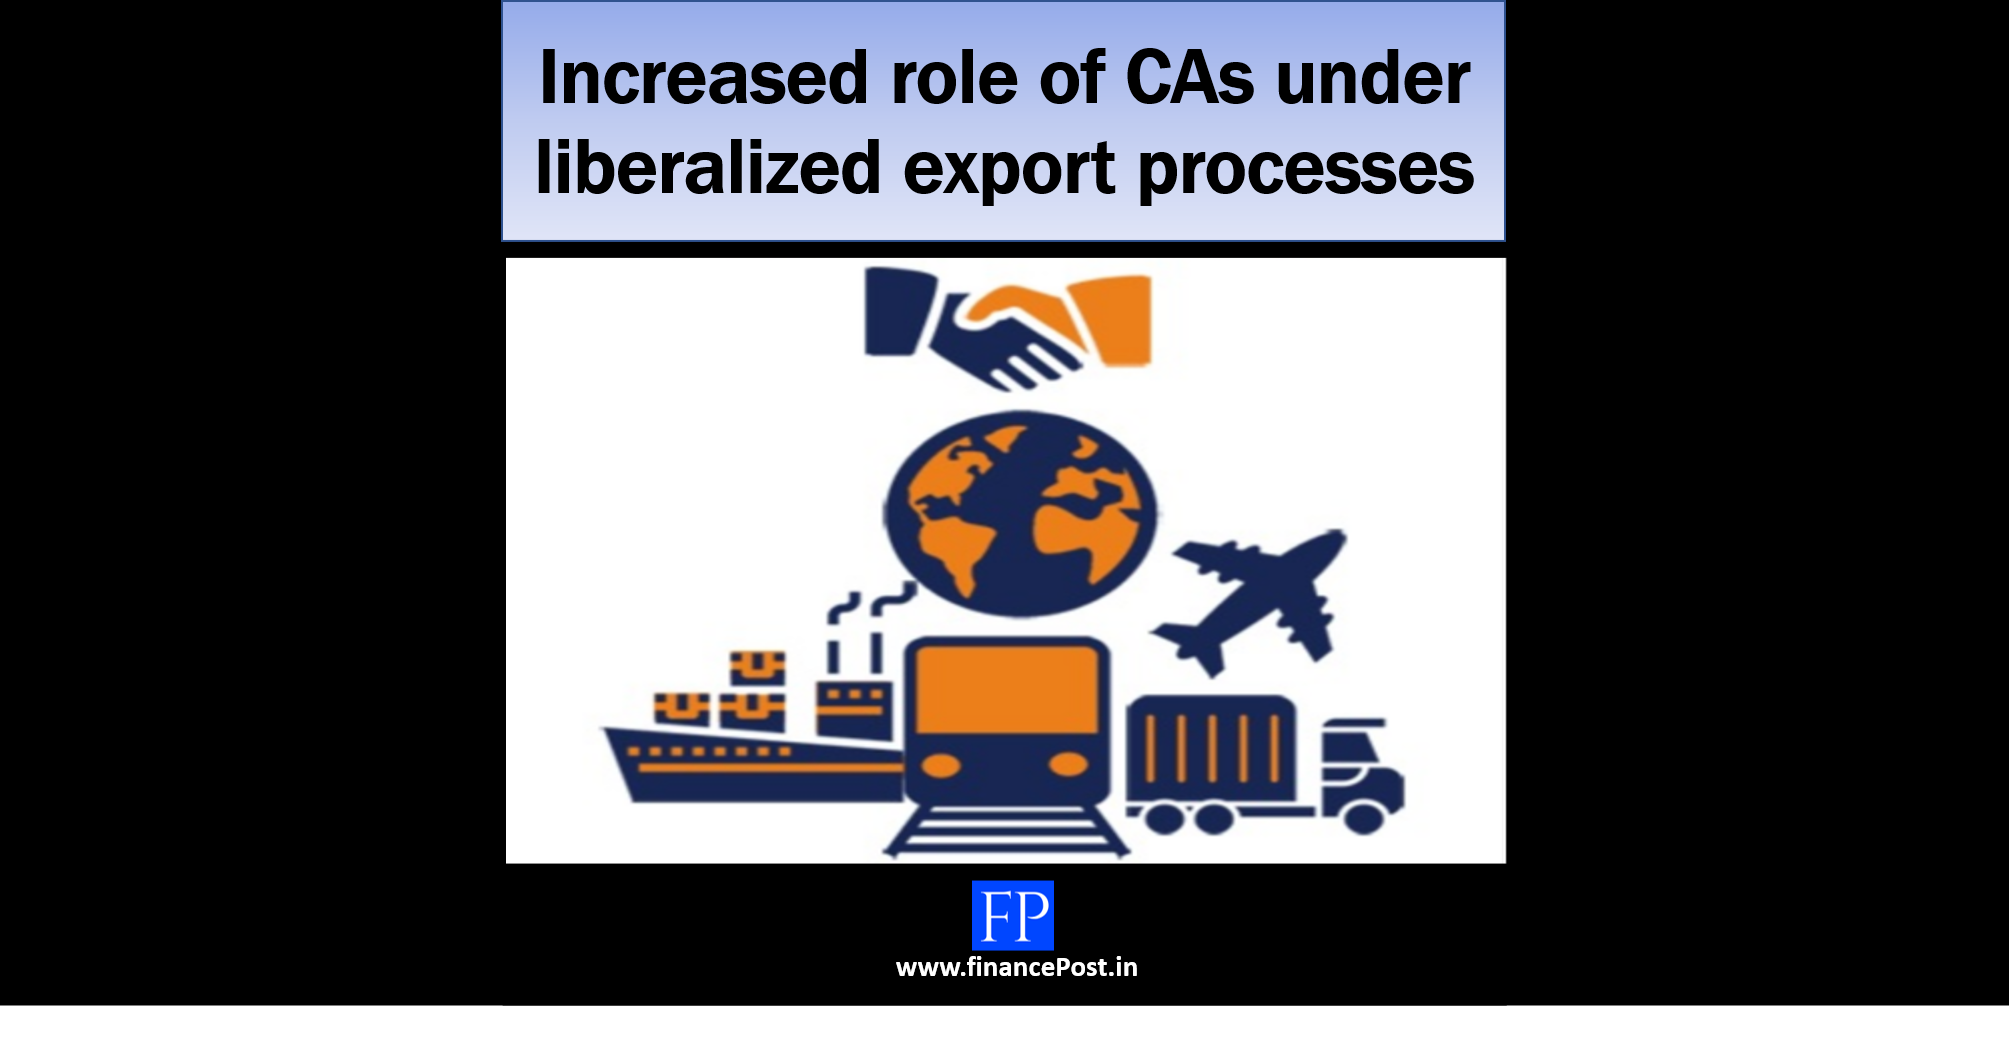 Increased role of CAs under liberalized export processes